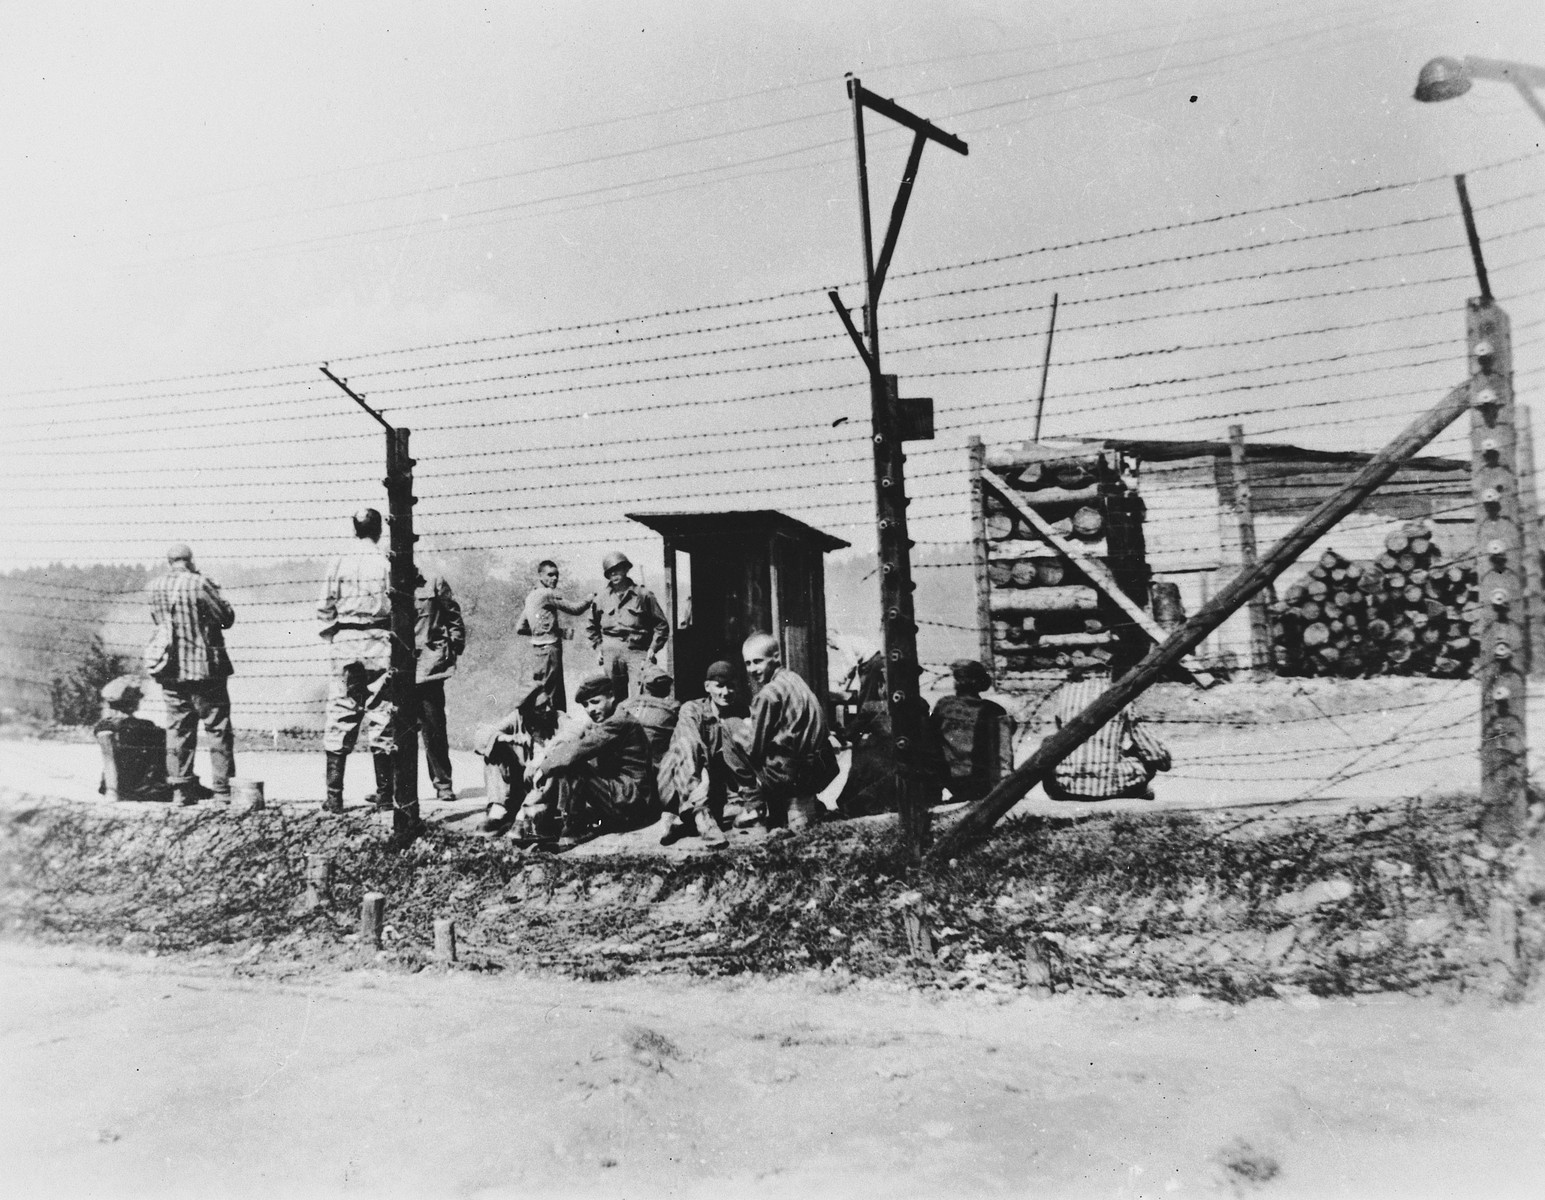 Liberated prisoners gather by the barbed wire fence in front of stacked wood in an unidentified concentration camp.